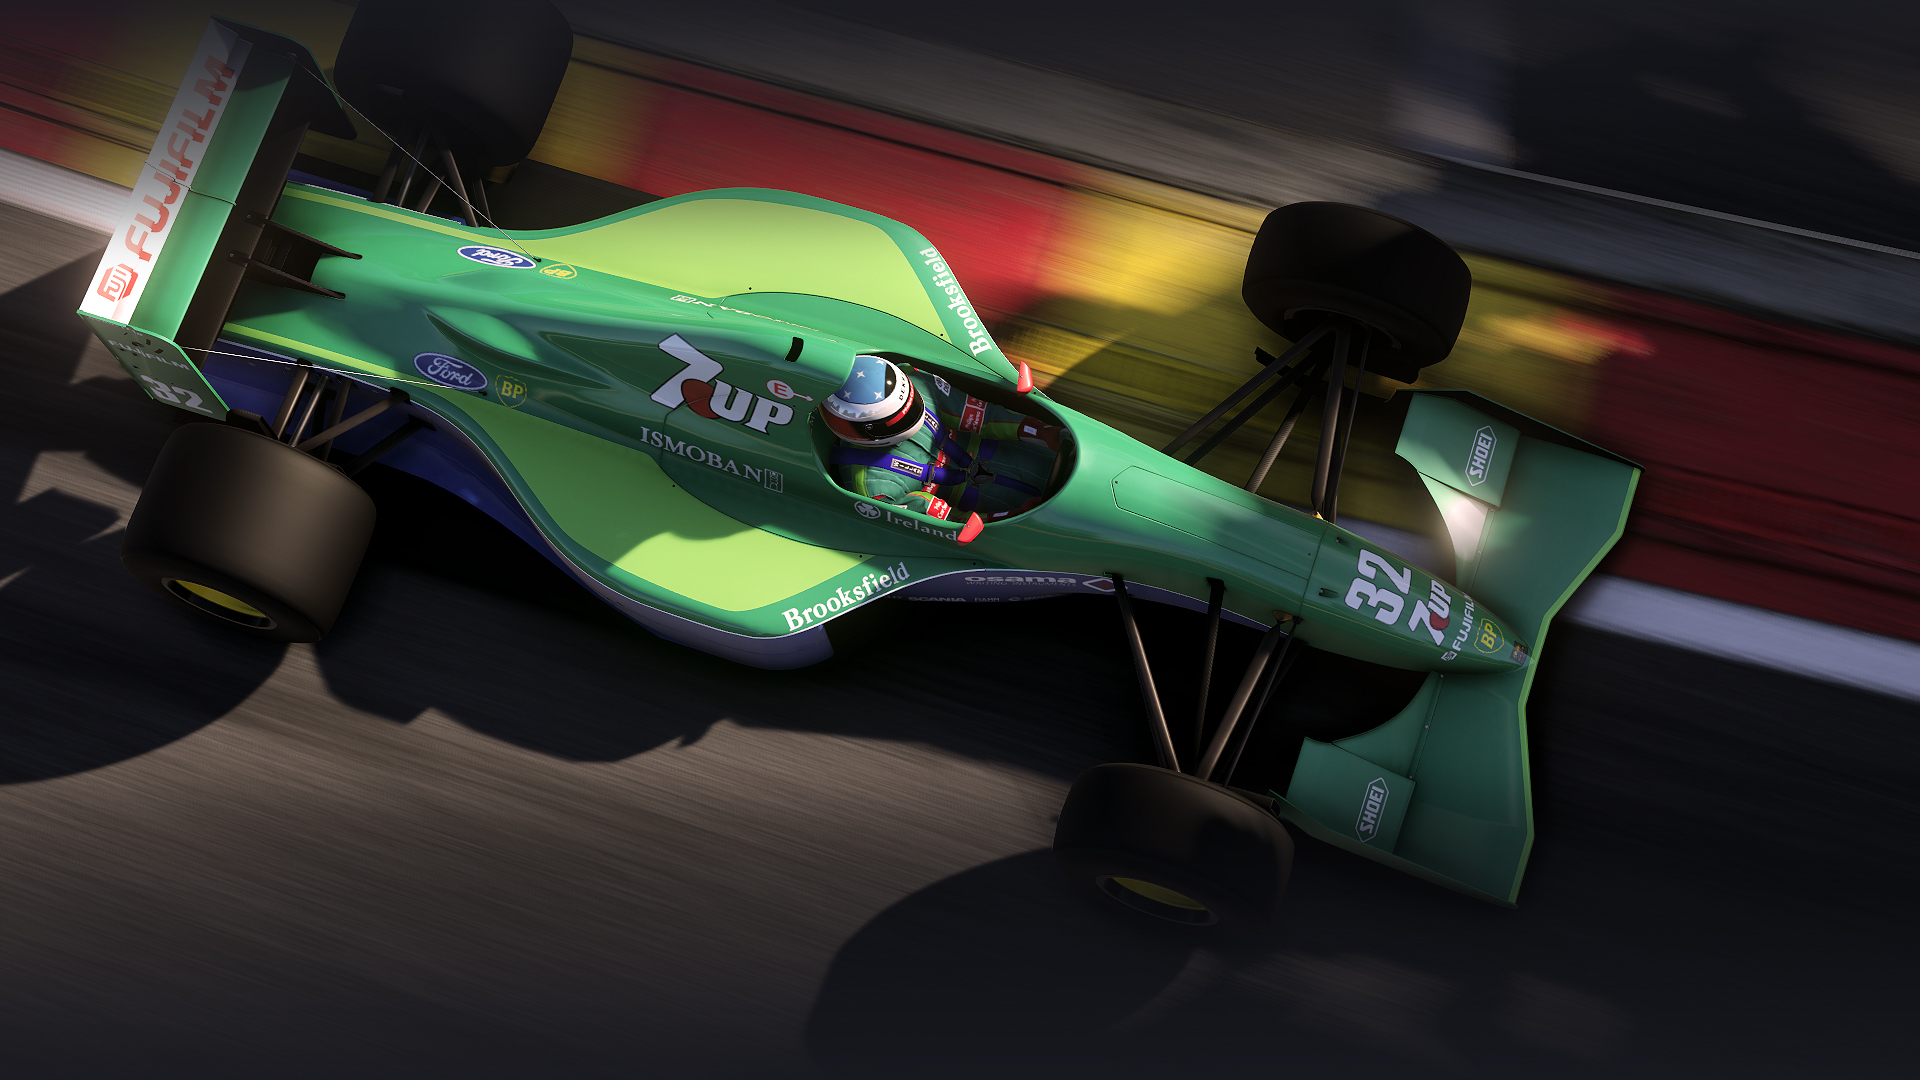 Celebrate The Most Successful F1 Driver Of All Time With The F1 2020 Deluxe Schumacher Edition Codemasters Racing Ahead